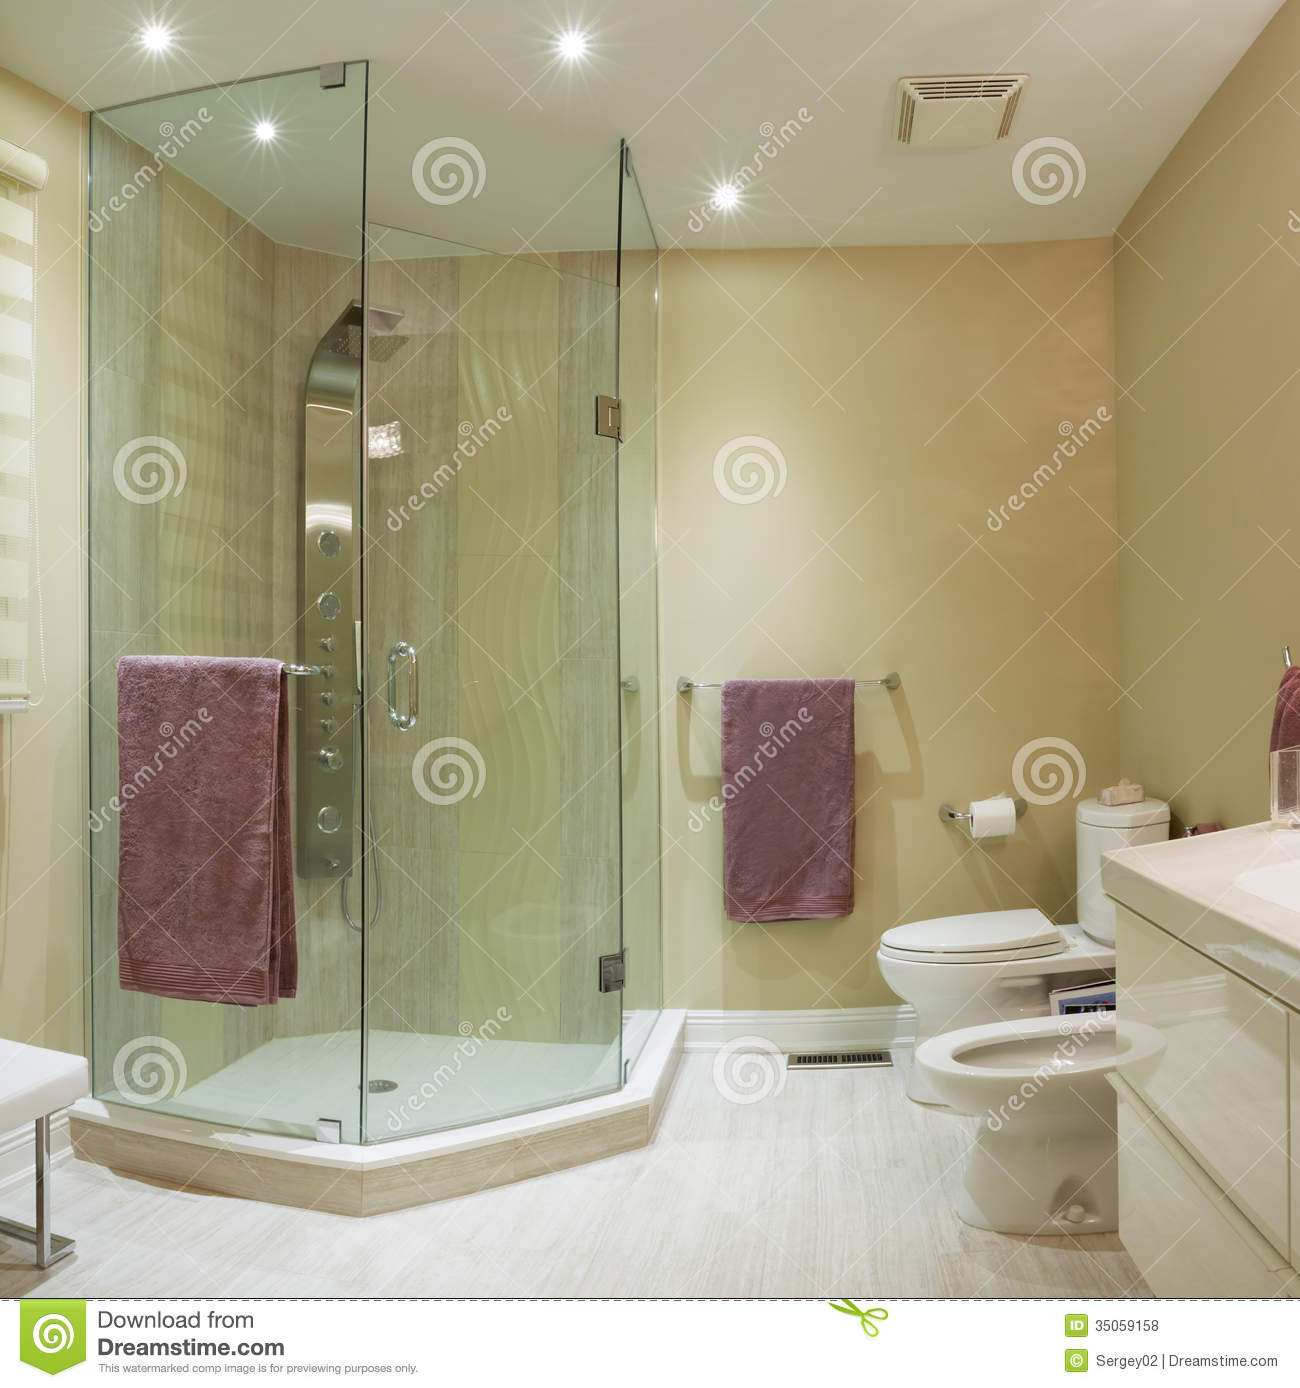 Interior design royalty free stock photos image 35059158 for Toilet design for home